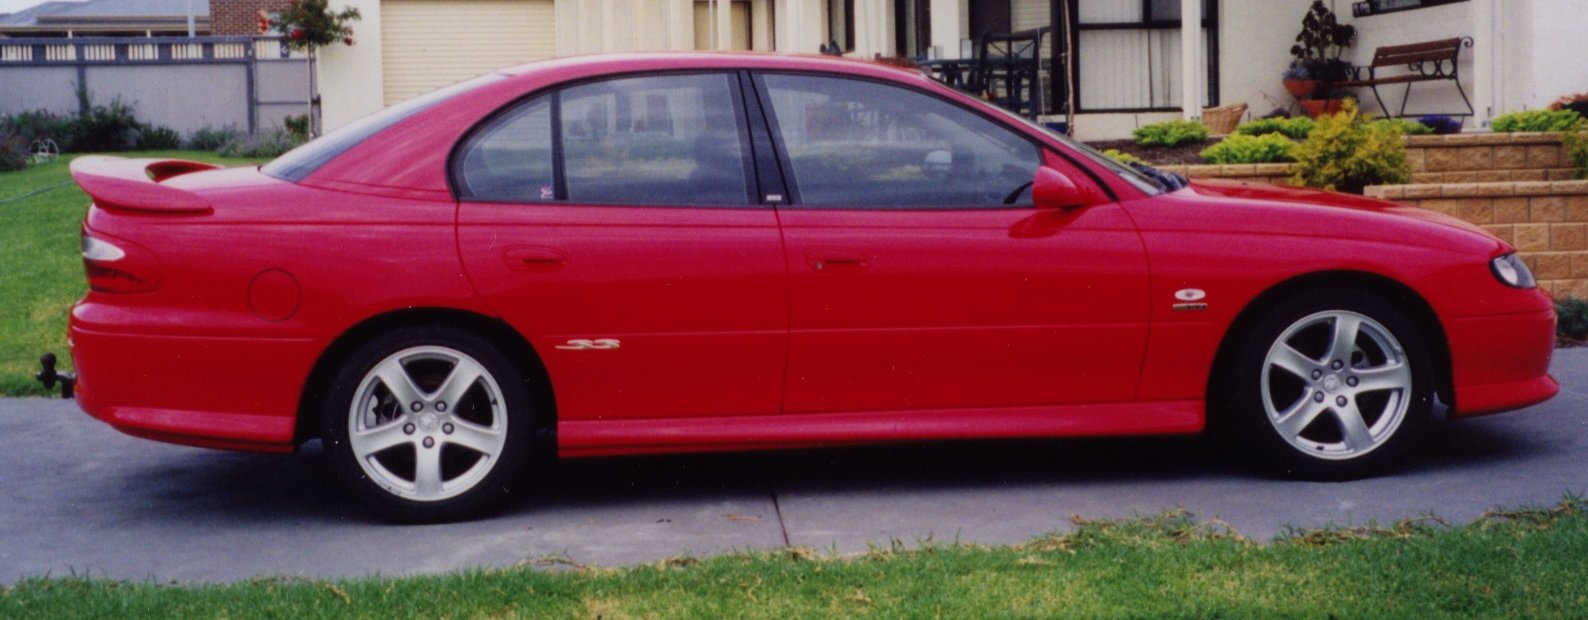 2000 Holden Commodore #9